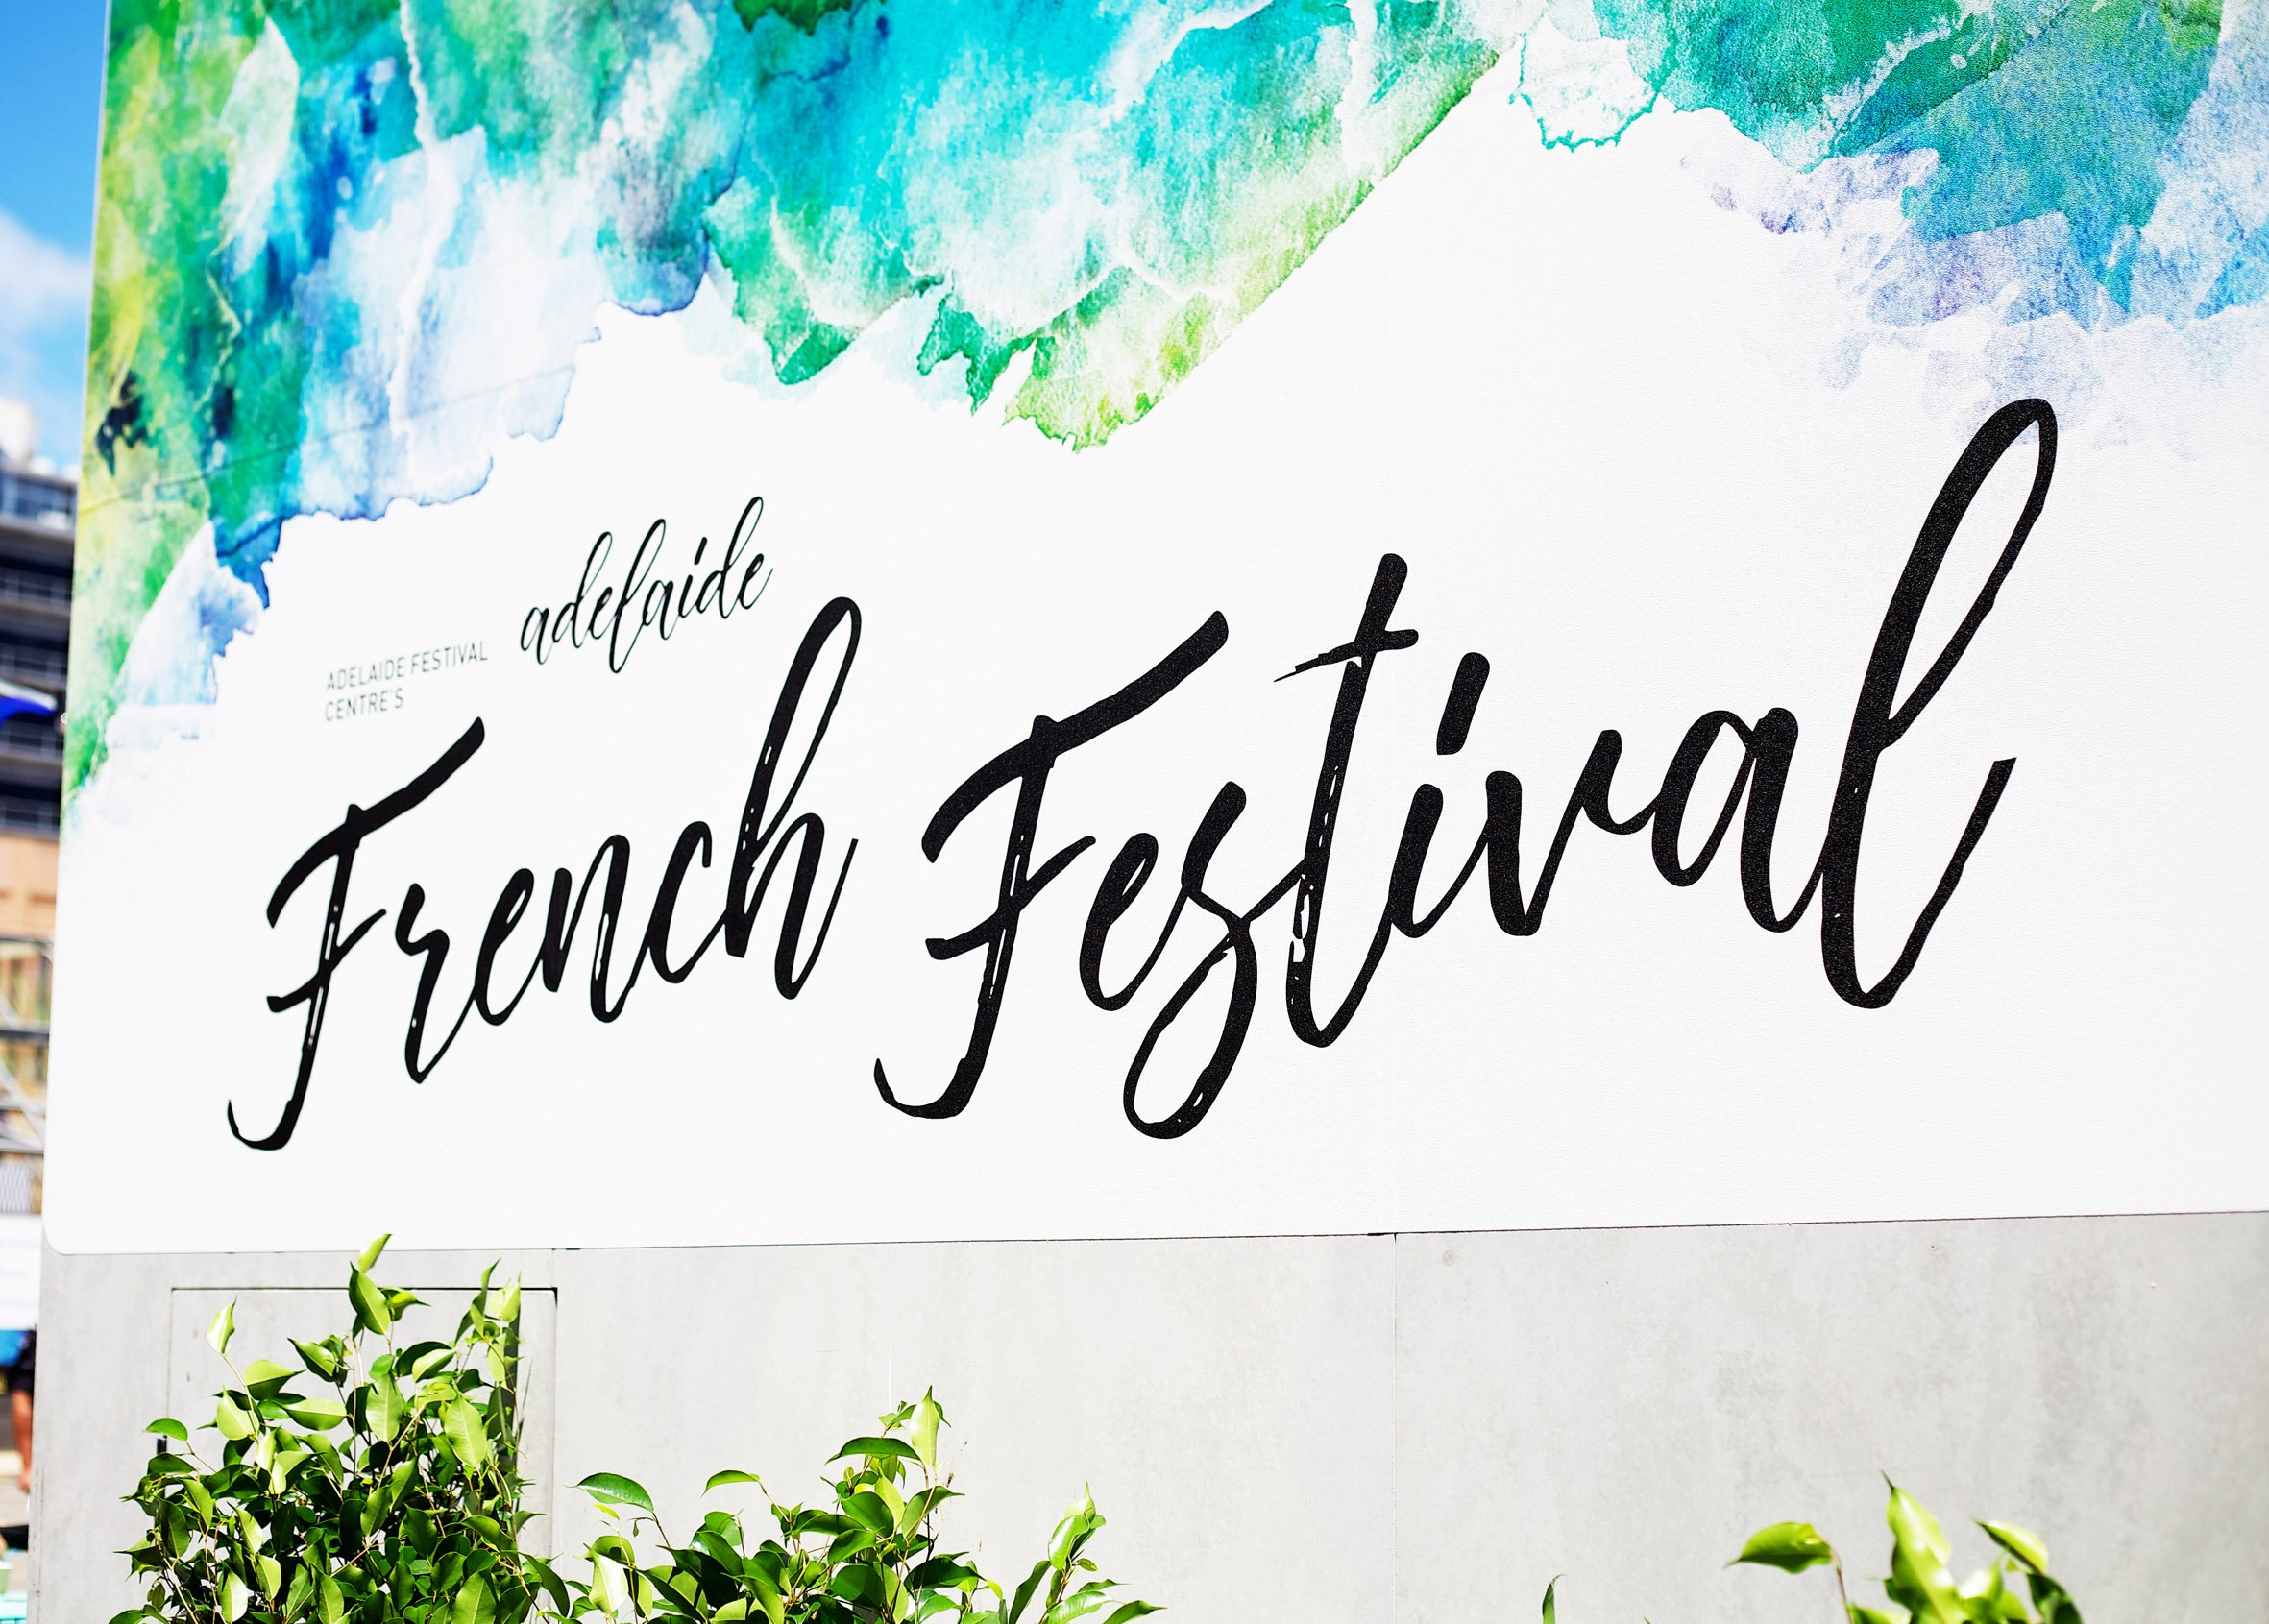 Masterclasses sold out at Adelaide French Festival